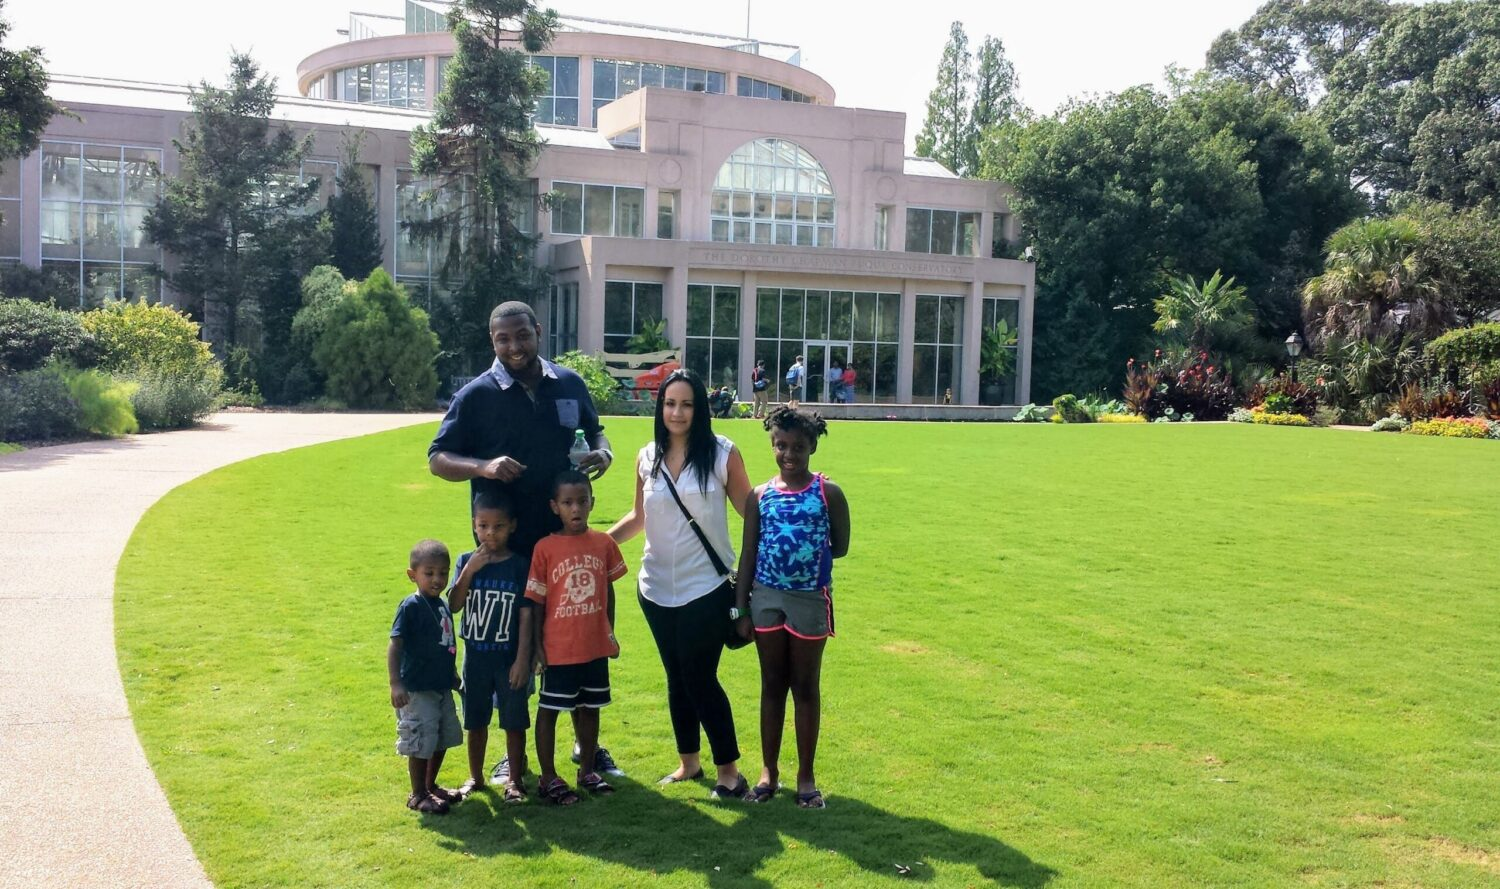 A family poses in front of the Atlanta Botanical Gardens, one of the best things to do in Atlanta with kids